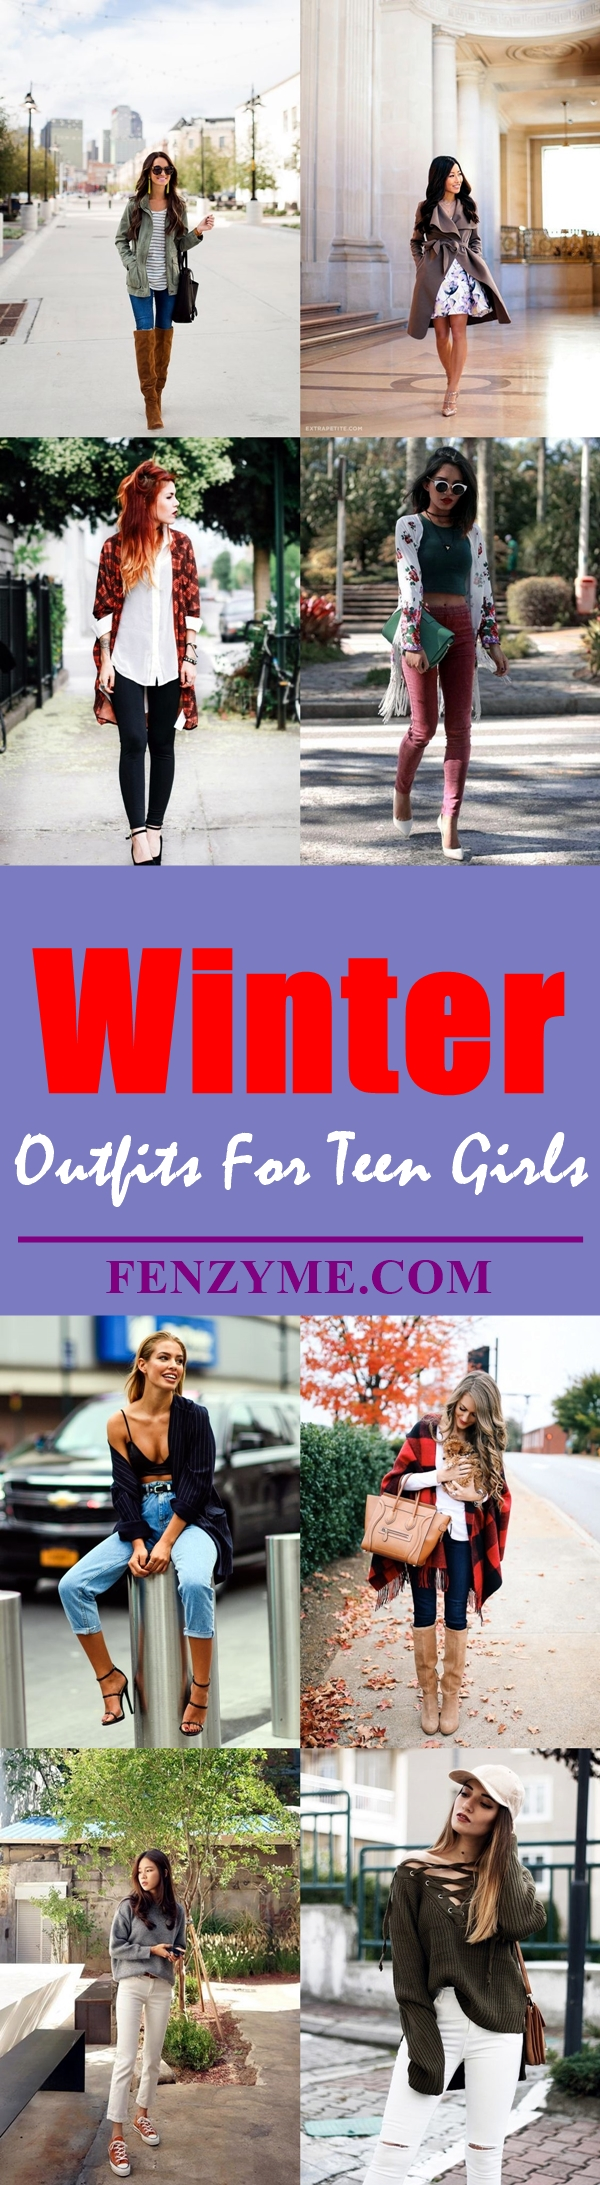 winter-outfits-for-teen-girls-2-tile